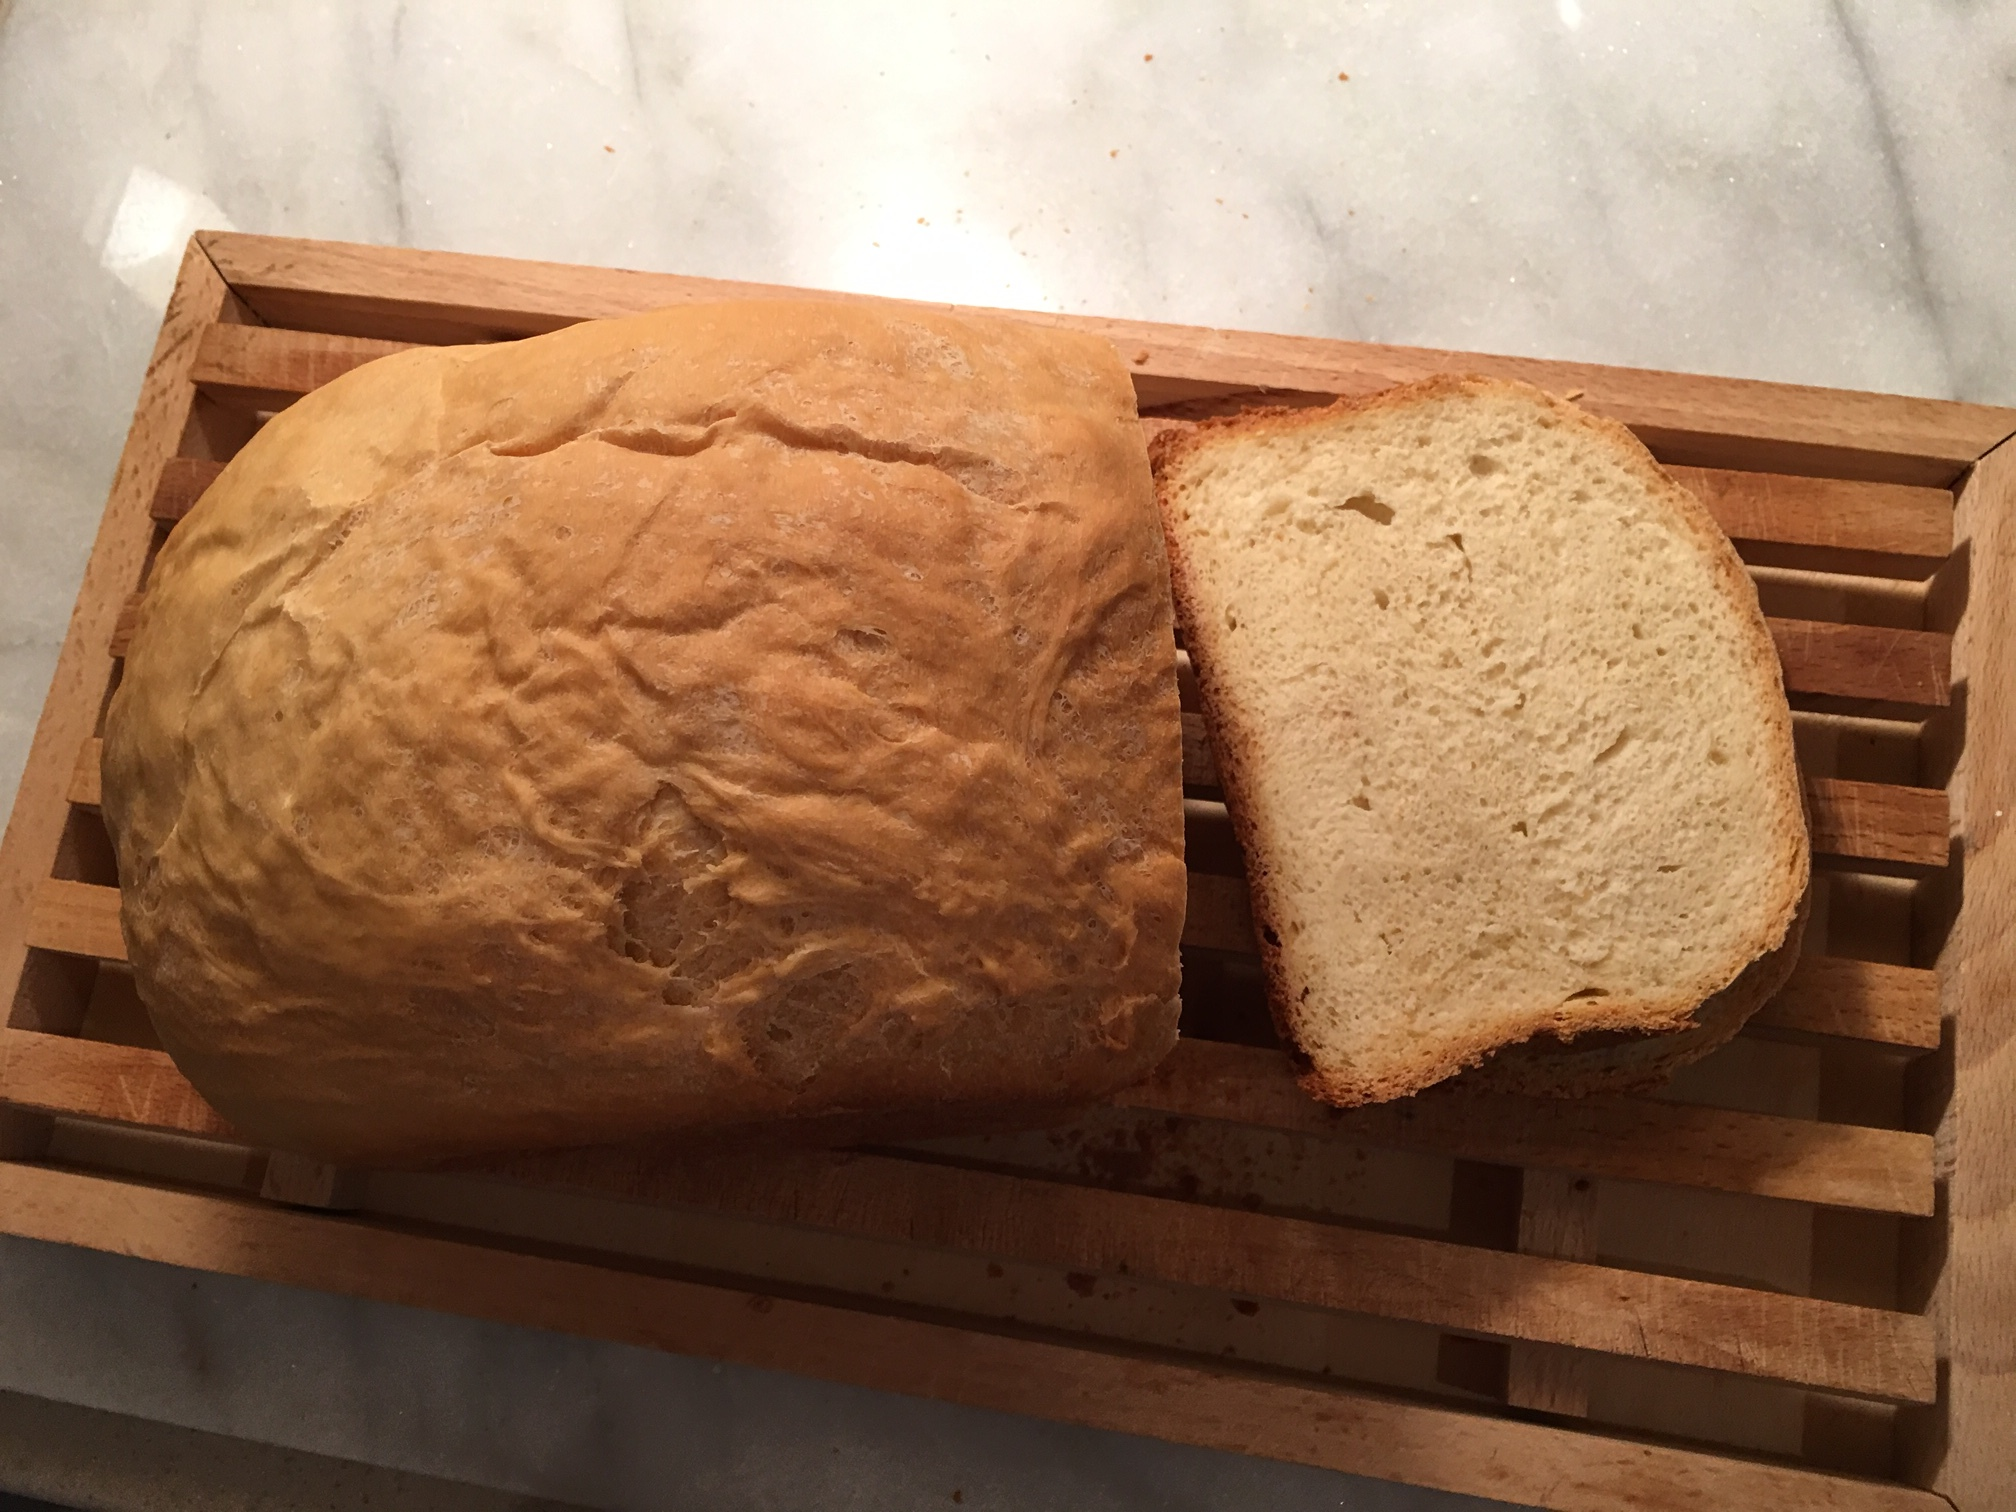 A 1½-lb loaf made in my bread machine. These days I prefer the smaller loaf (reduced from 2 lbs) because I find the size more ideal for toast and sandwiches. The French breadboard, a gift from my mother-in-law after a vacation in Vaucluse, is very handy for catching the crumbs when you slice.